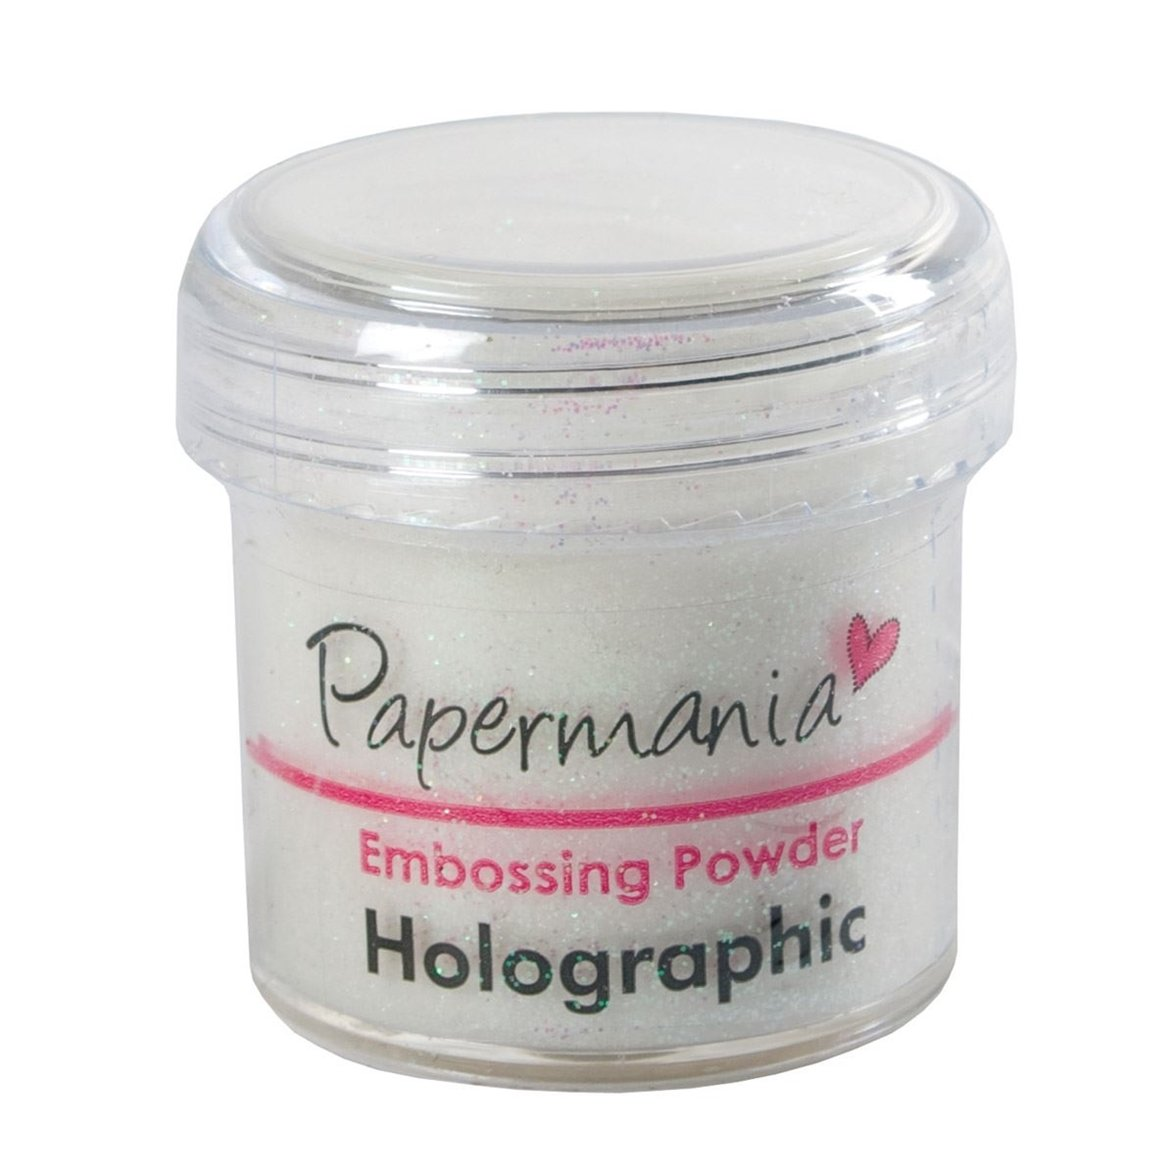 Docrafts 1 oz Embossing Powder, Holographic PMA 4021002